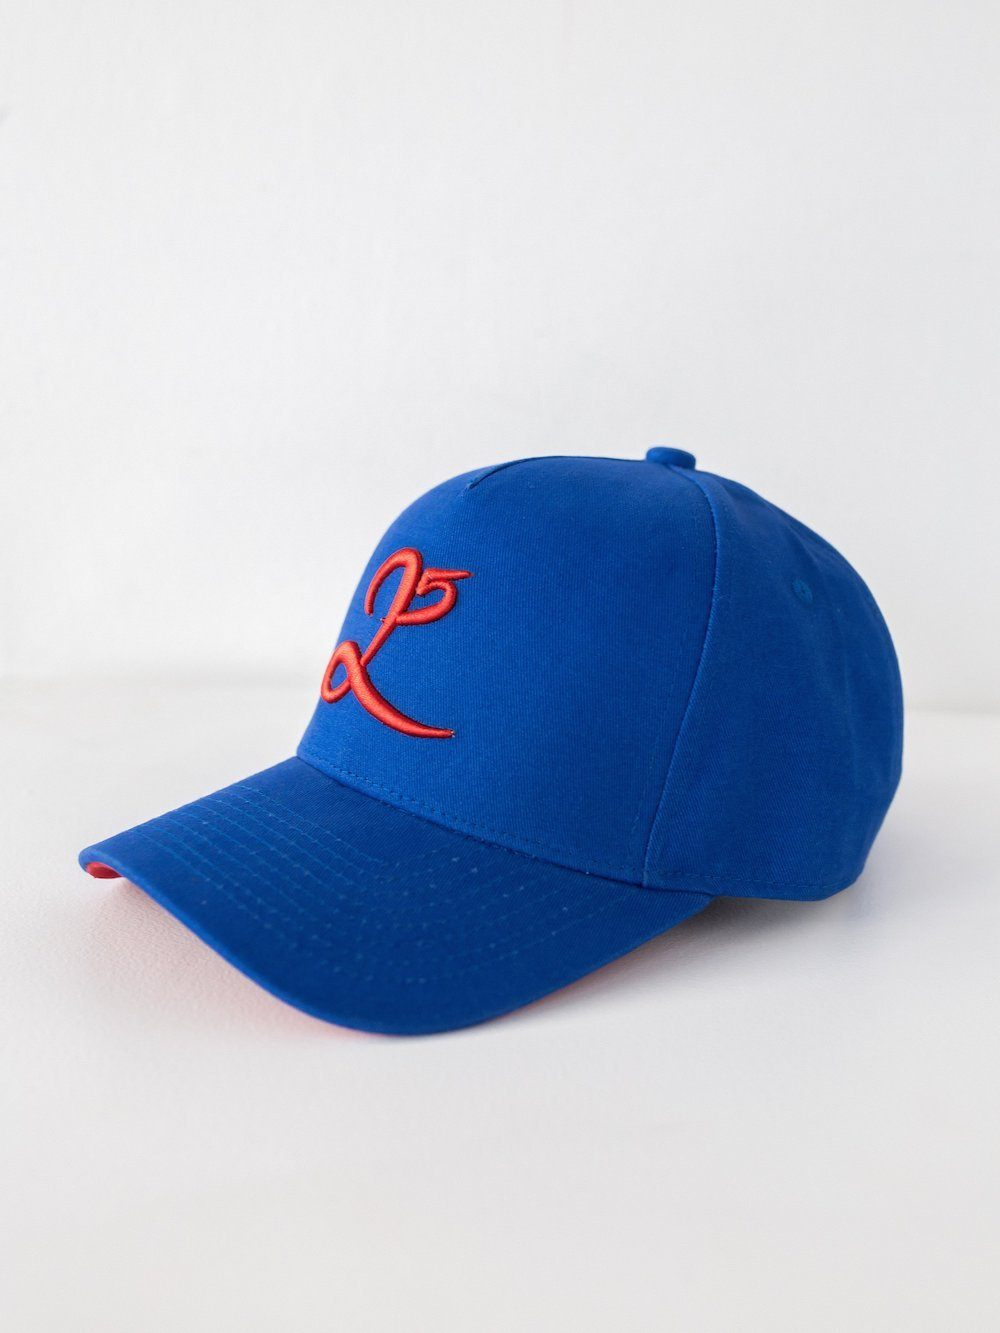 TwentyFive Fury V Edition Cap - Blue